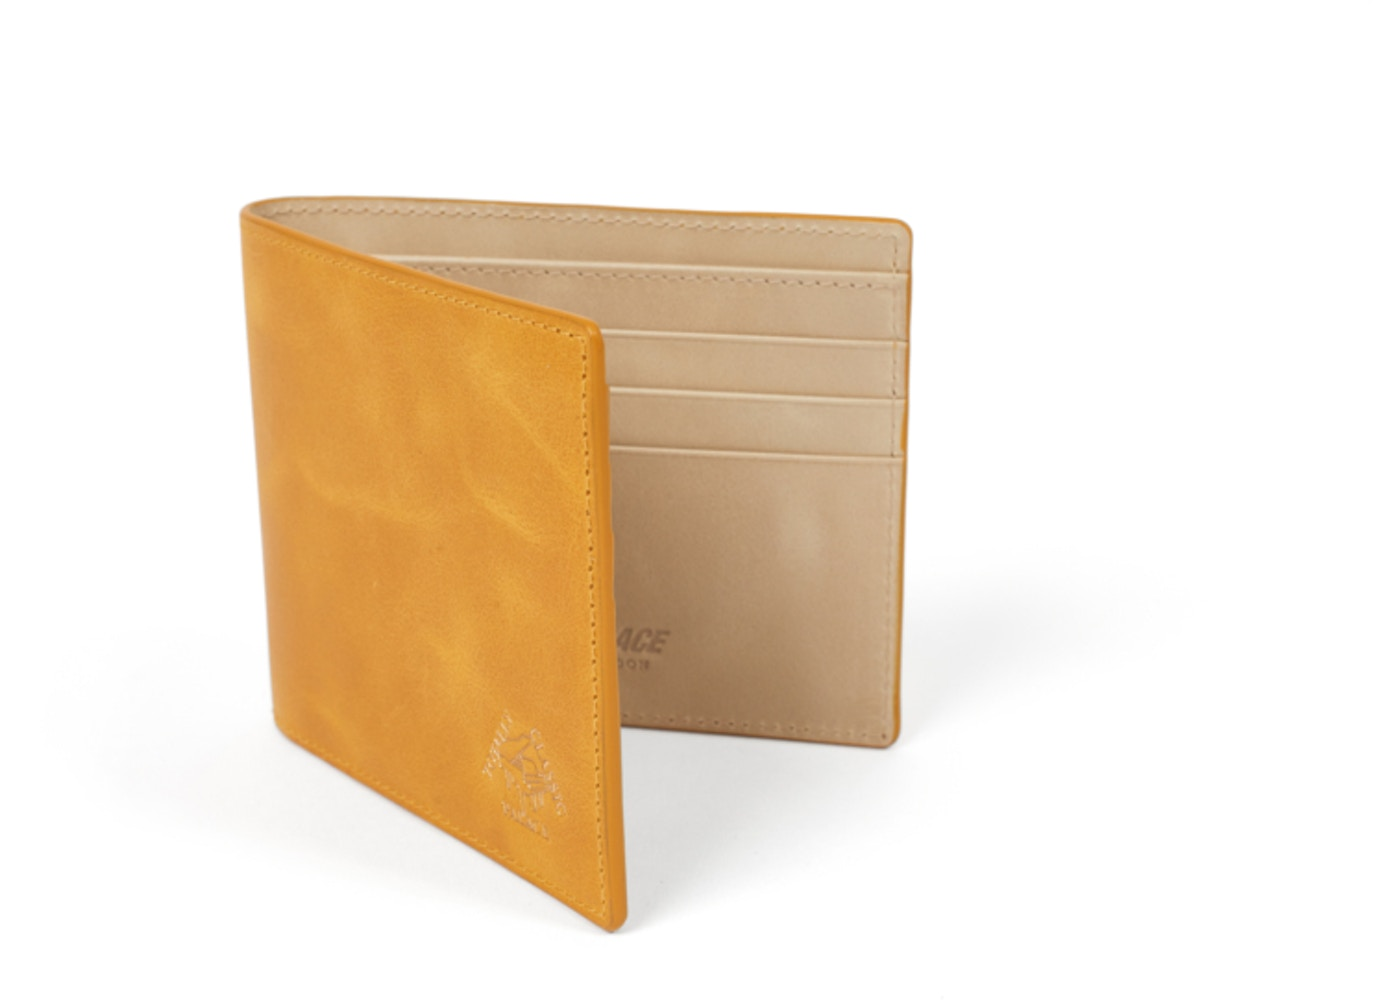 adf2b40e Palace Leather Billfold Wallet Yellow - SS19